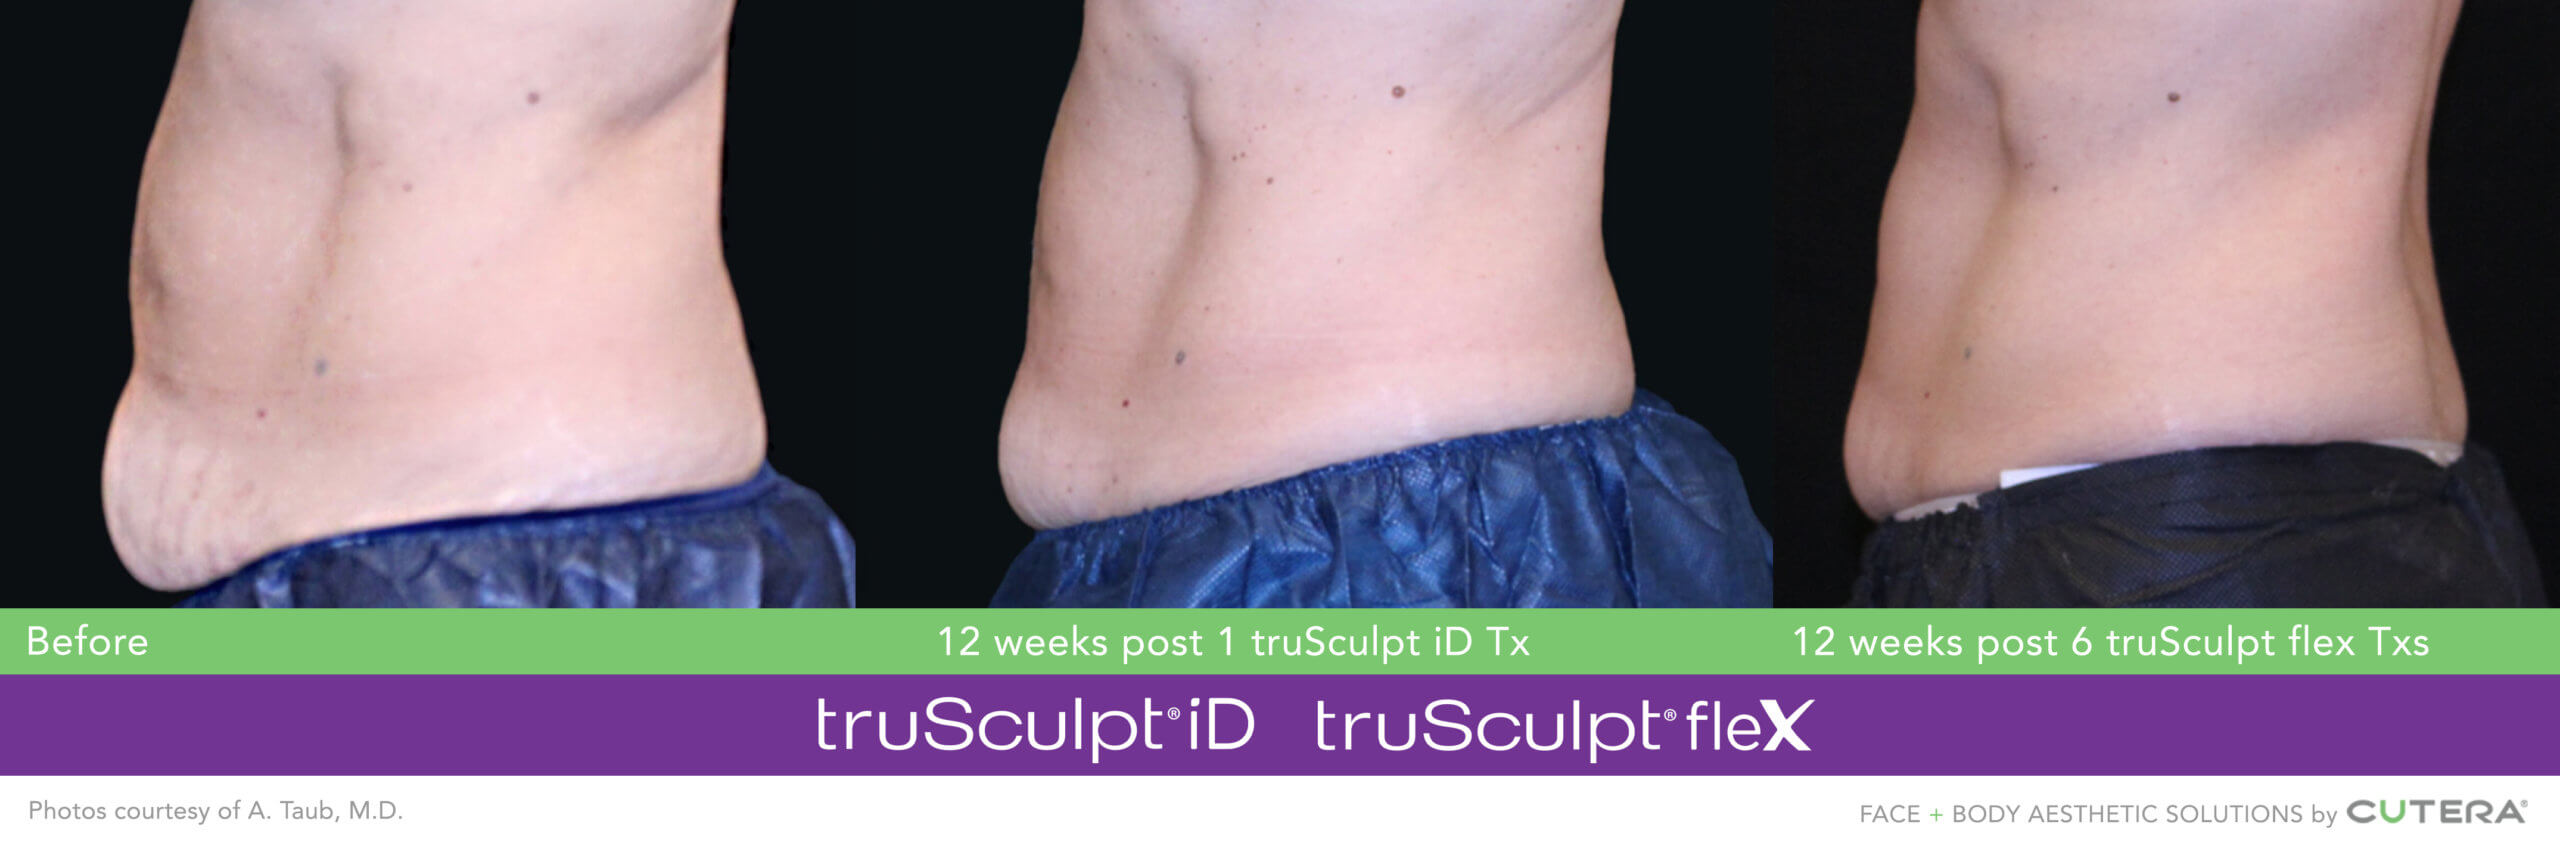 Muscle Sculpting and Body Sculpting on the abdomen and flanks before and after image after 12 weeks